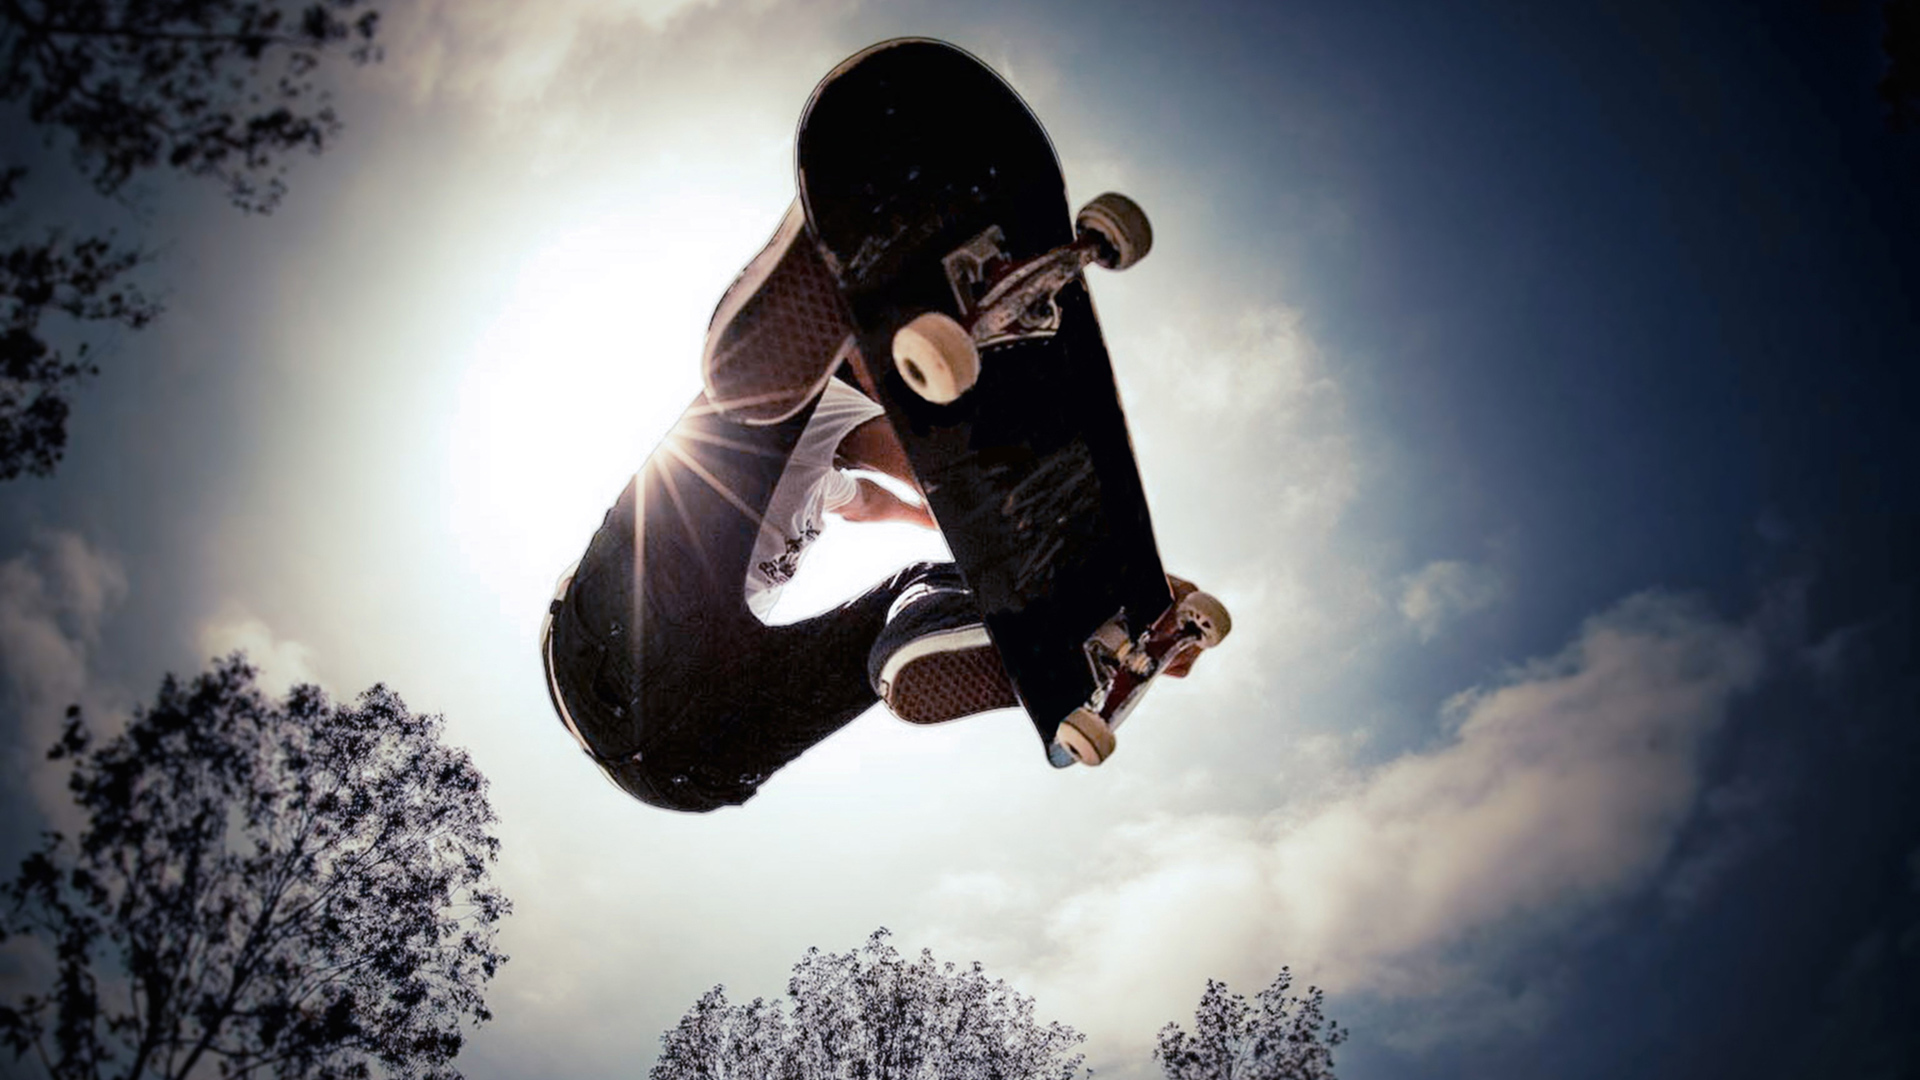 wallpaper.wiki-Skateboard-desktop-picture-PIC-WPE007905